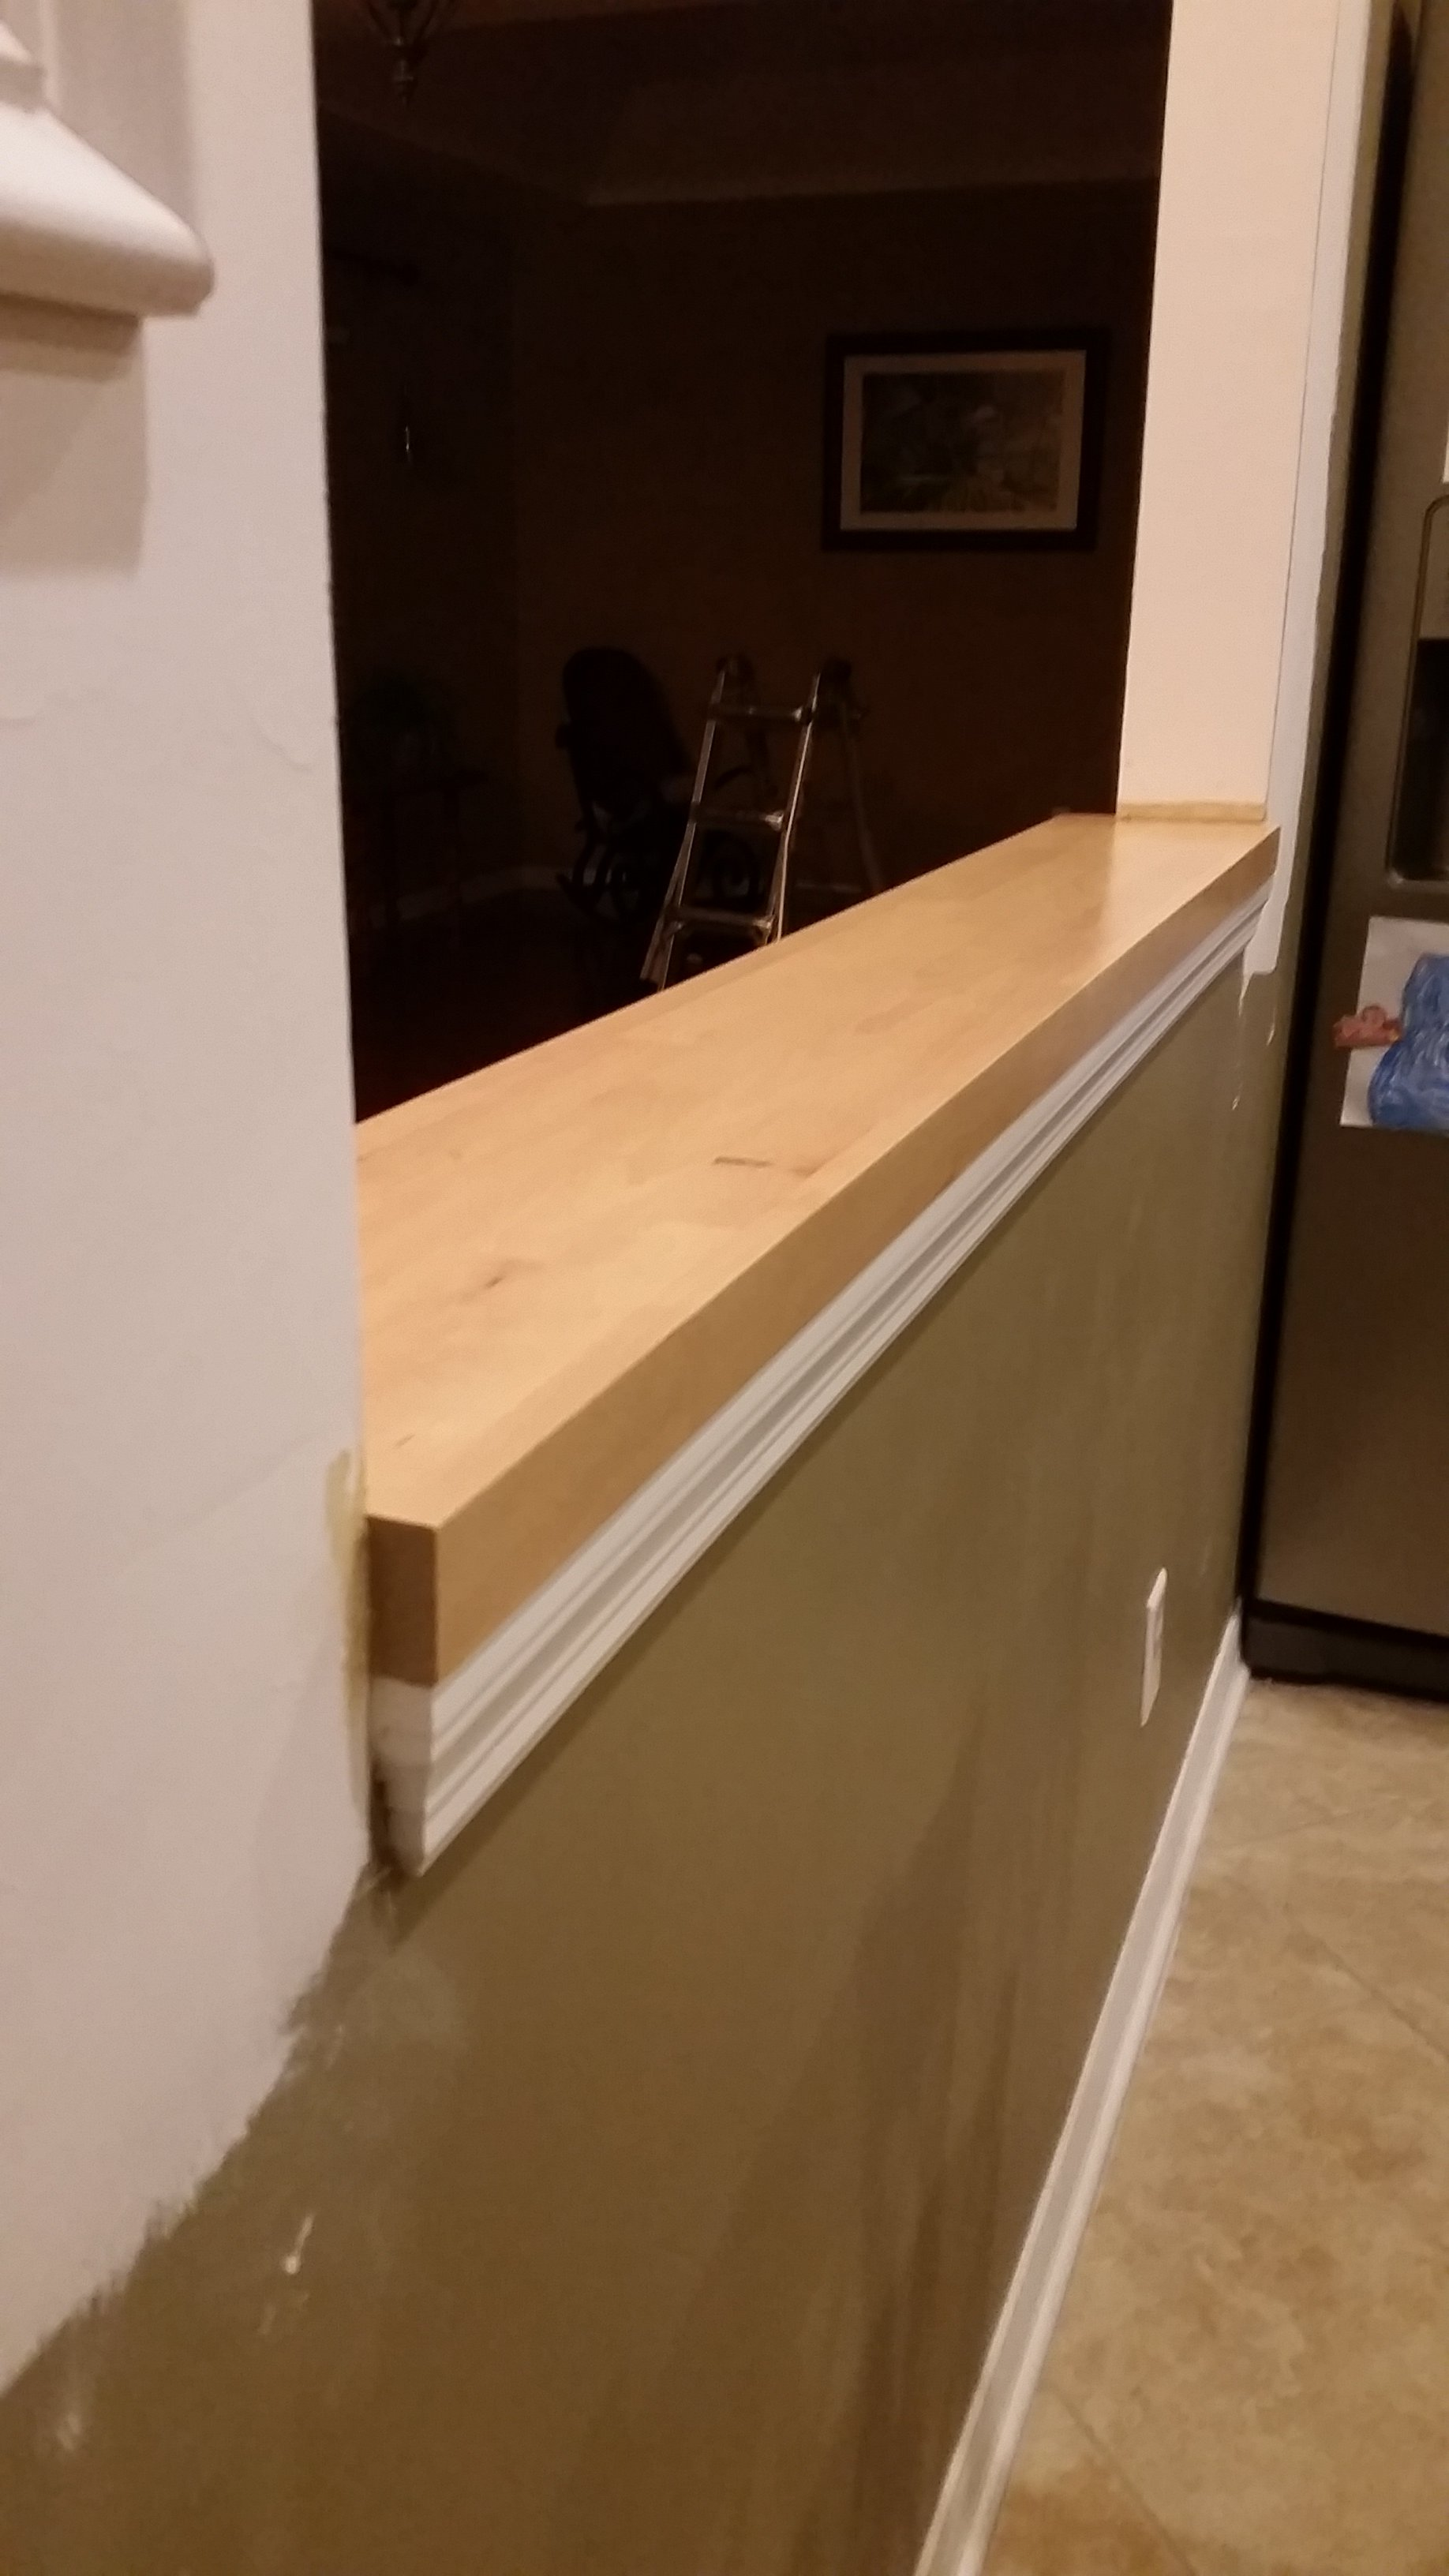 wall reduction trim install and butcher block install